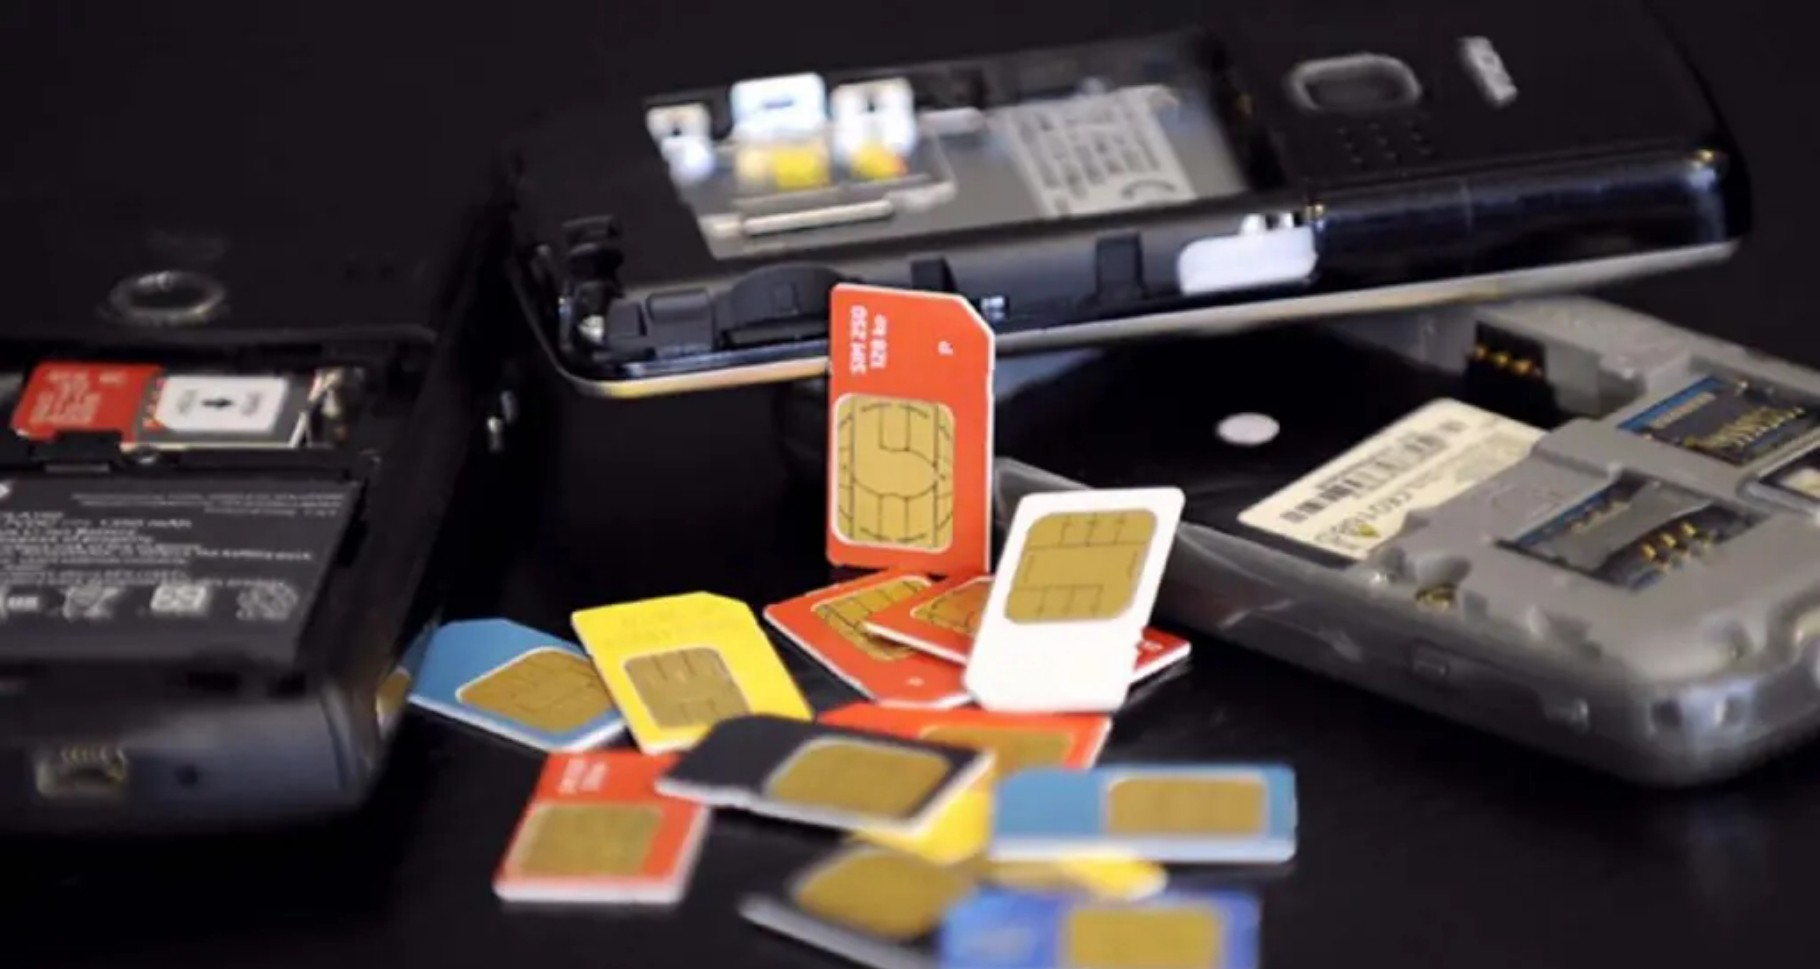 NCC directs telecos to suspend sale of new SIM cards 'pending audit'